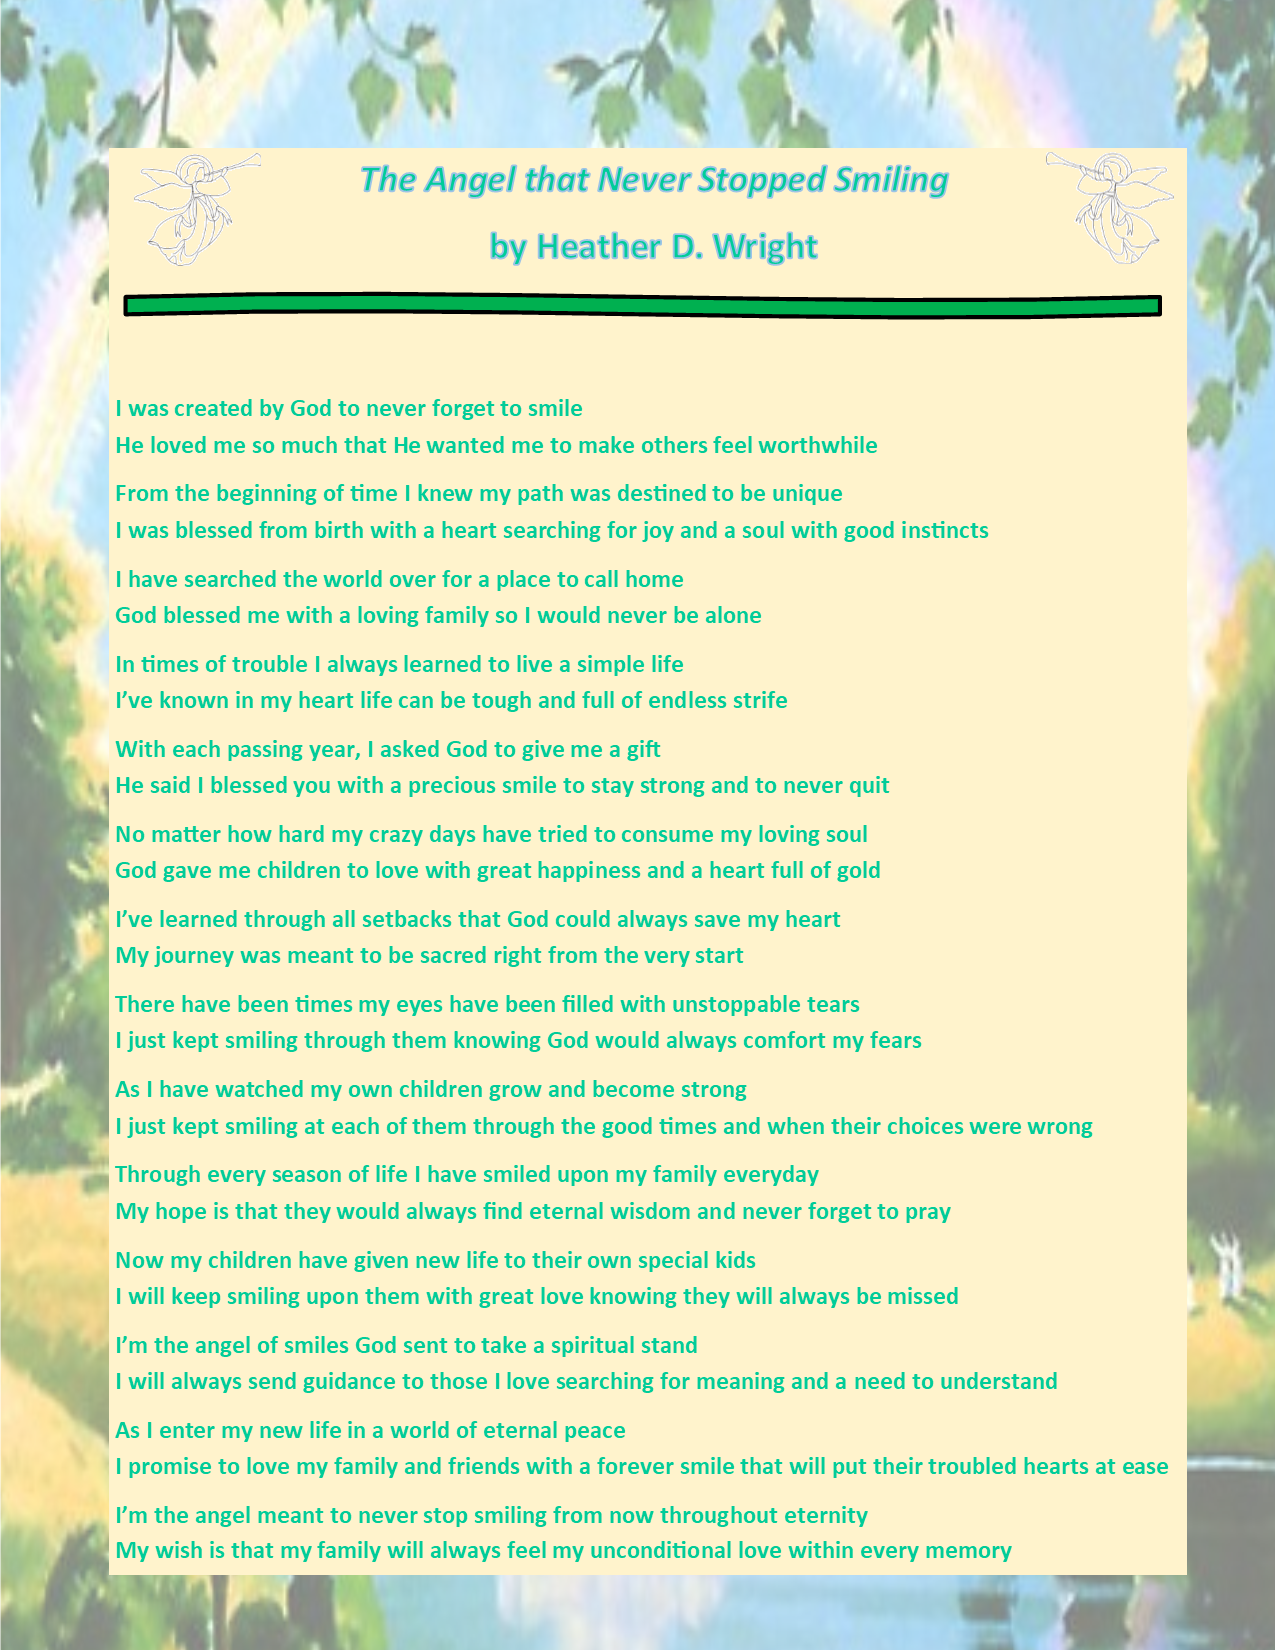 The Angel That Never Stopped Smiling - Printable Digital Download